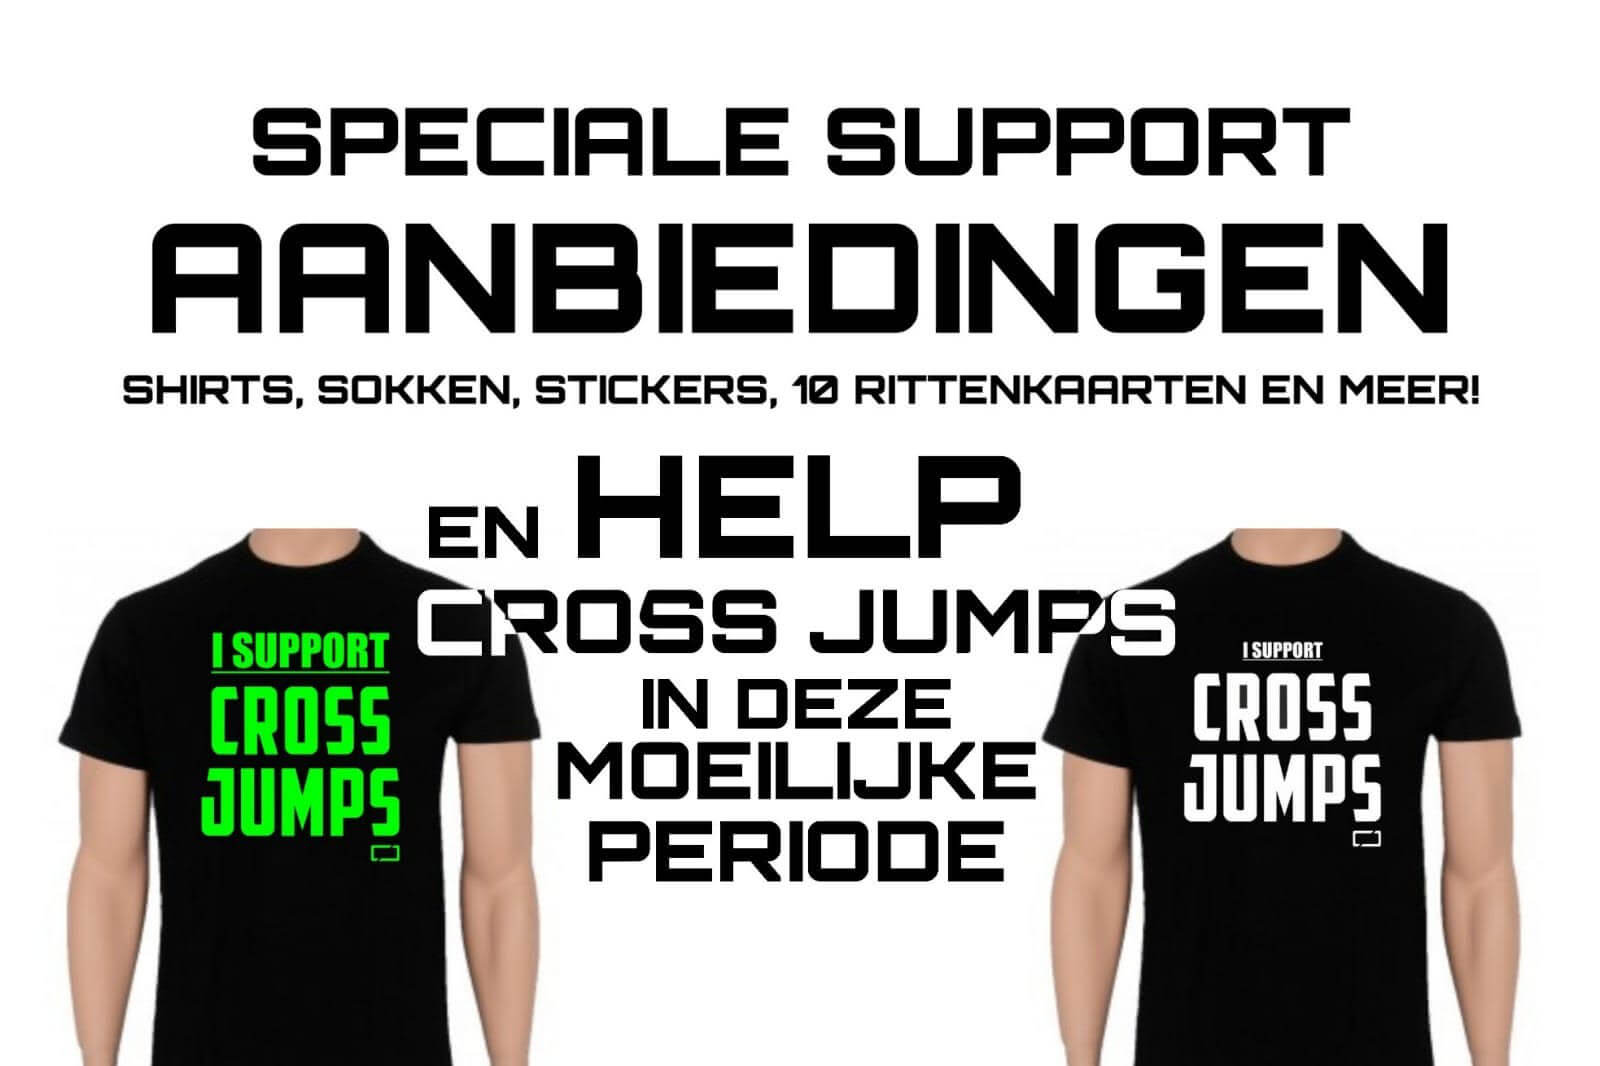 i support cross jumps